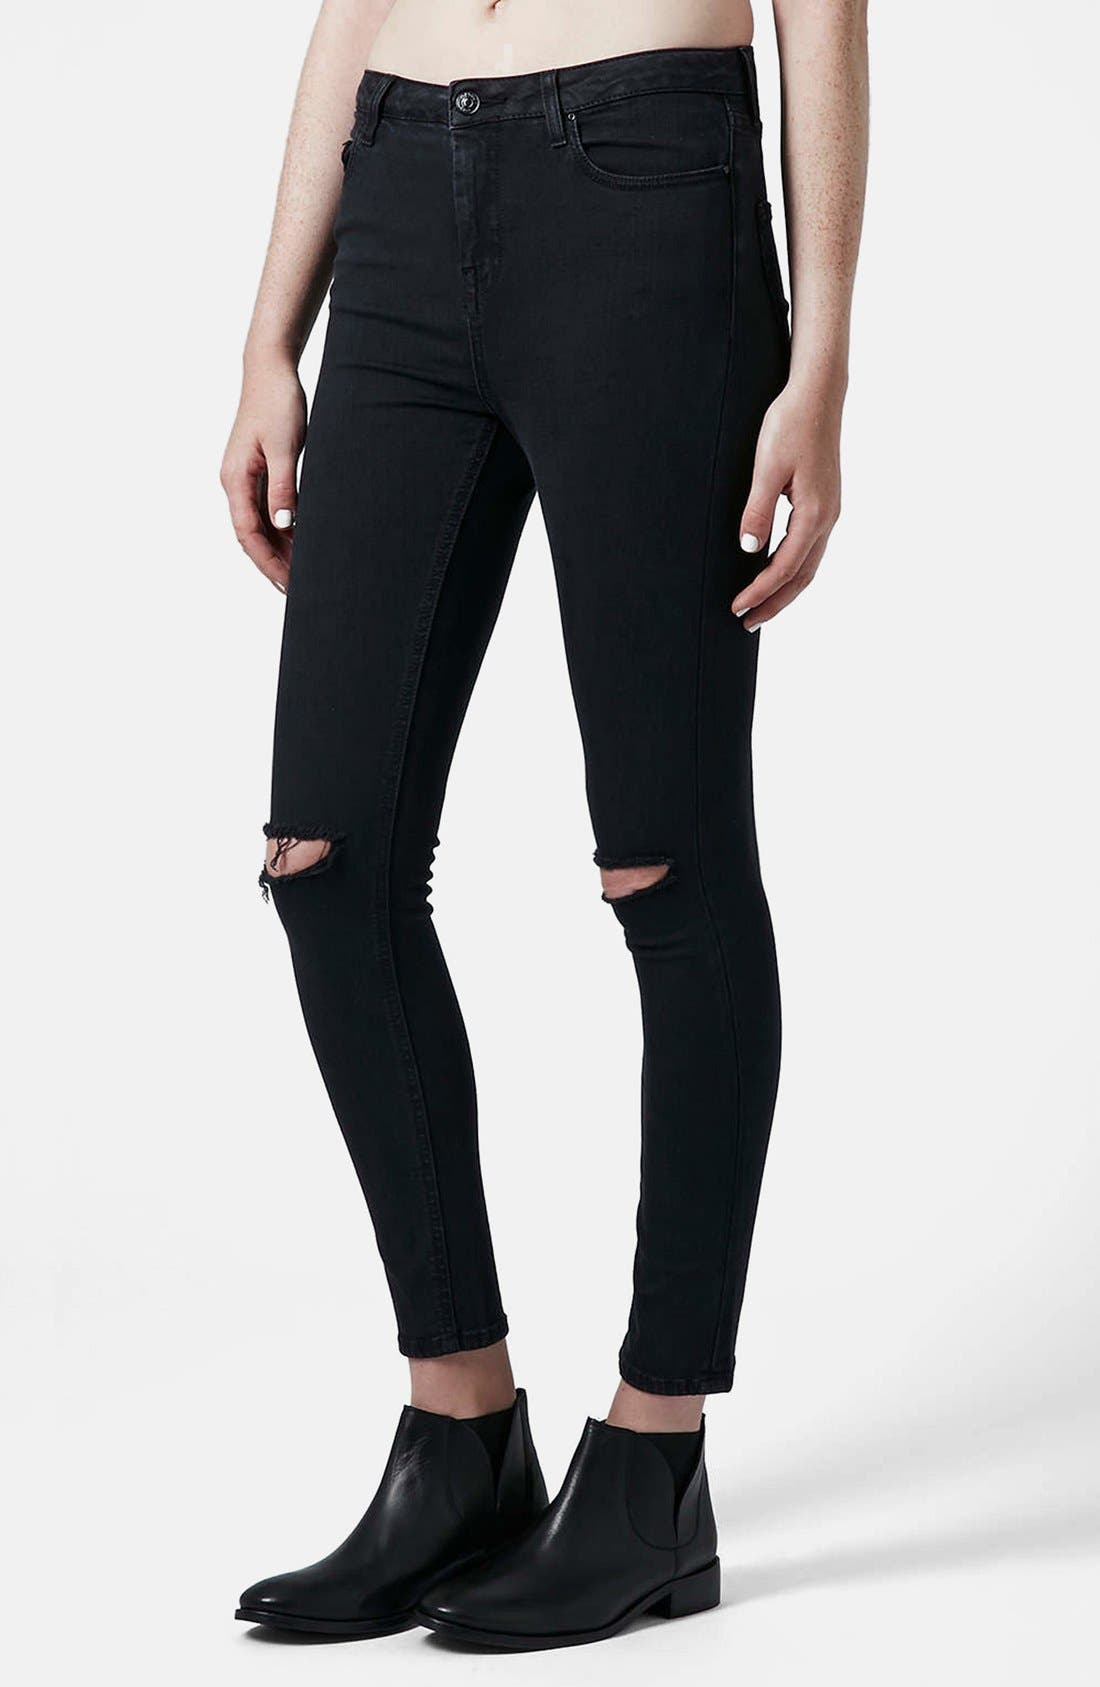 Alternate Image 1 Selected - Topshop Moto 'Jamie' Dark Wash Ripped Slim Jeans (Black) (Short & Regular)